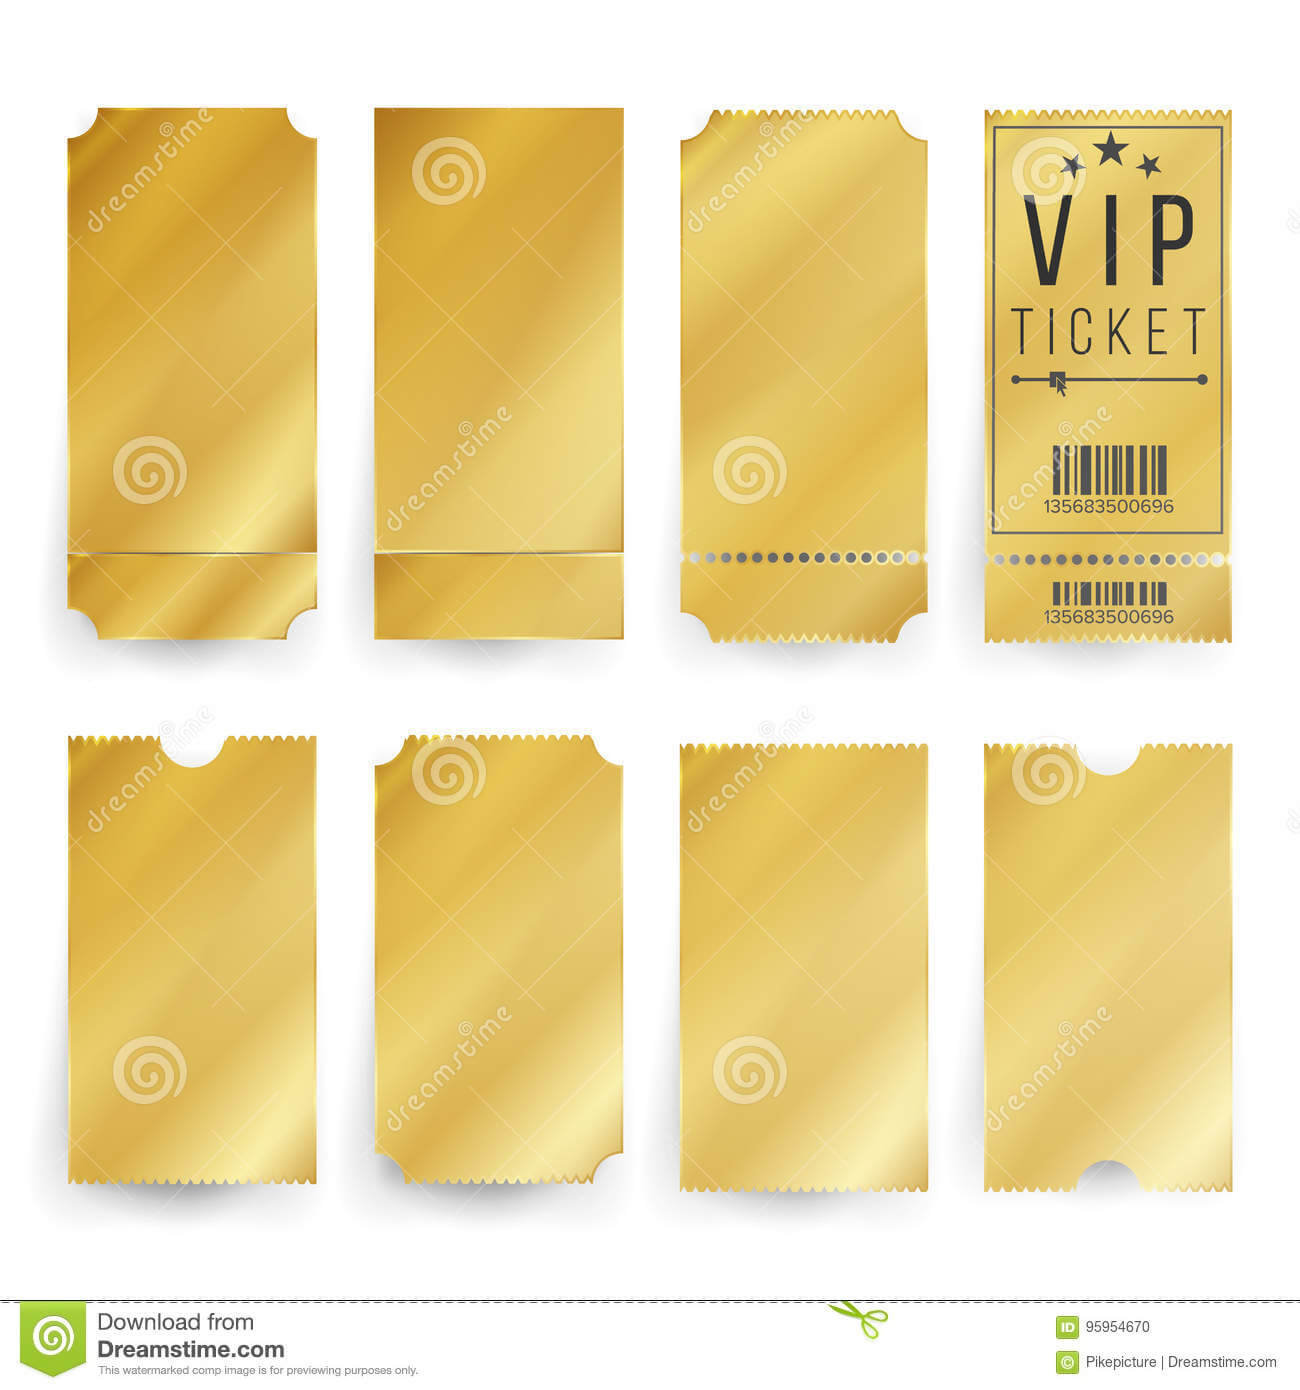 Vip Ticket Template Vector. Empty Golden Tickets And Coupons For Blank Train Ticket Template